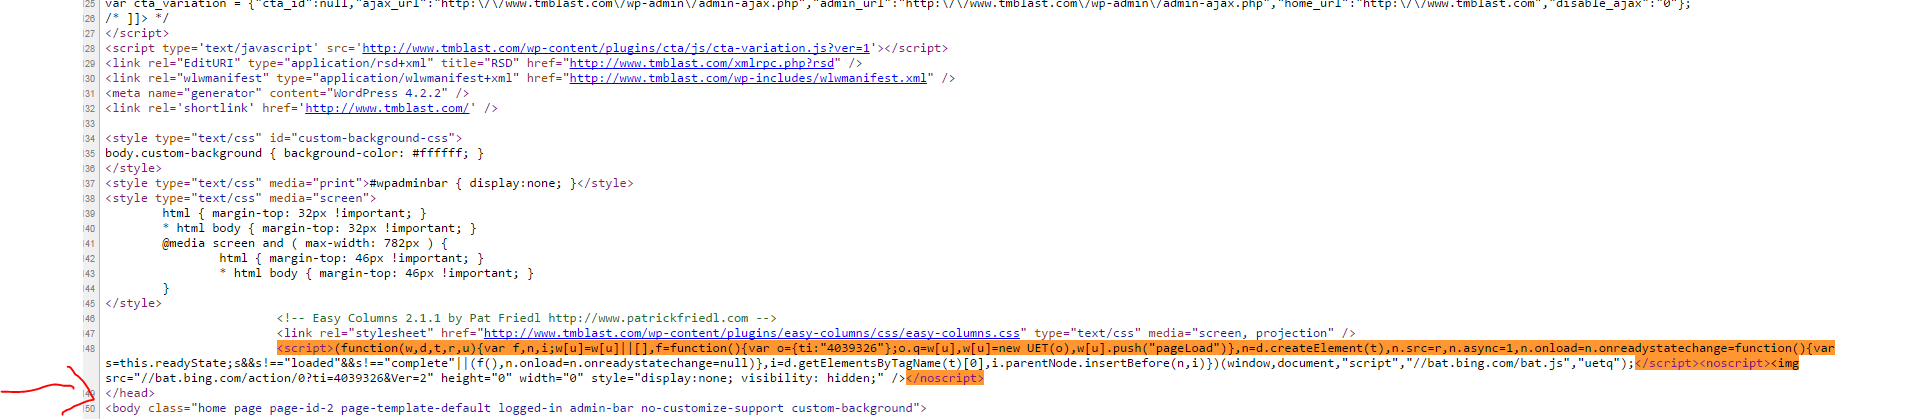 Here is the tracking code that is right before the head in Bing Ads